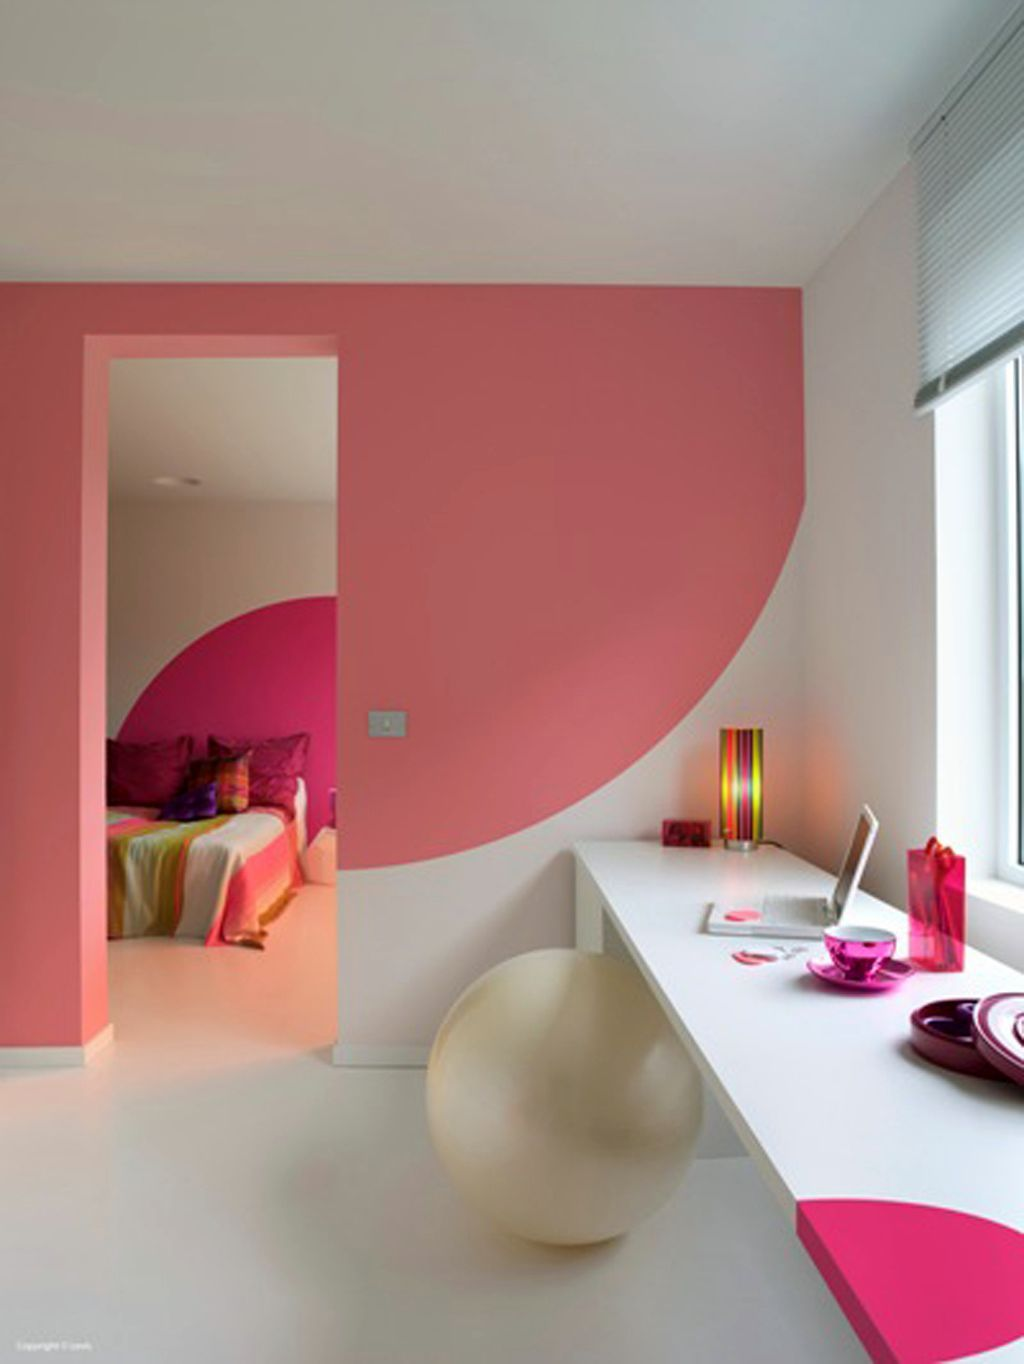 Cool bedroom wall designs for girls - Image Cool Bedroom Paint Designs Half Circle Pink Cool Wall Painting Designs